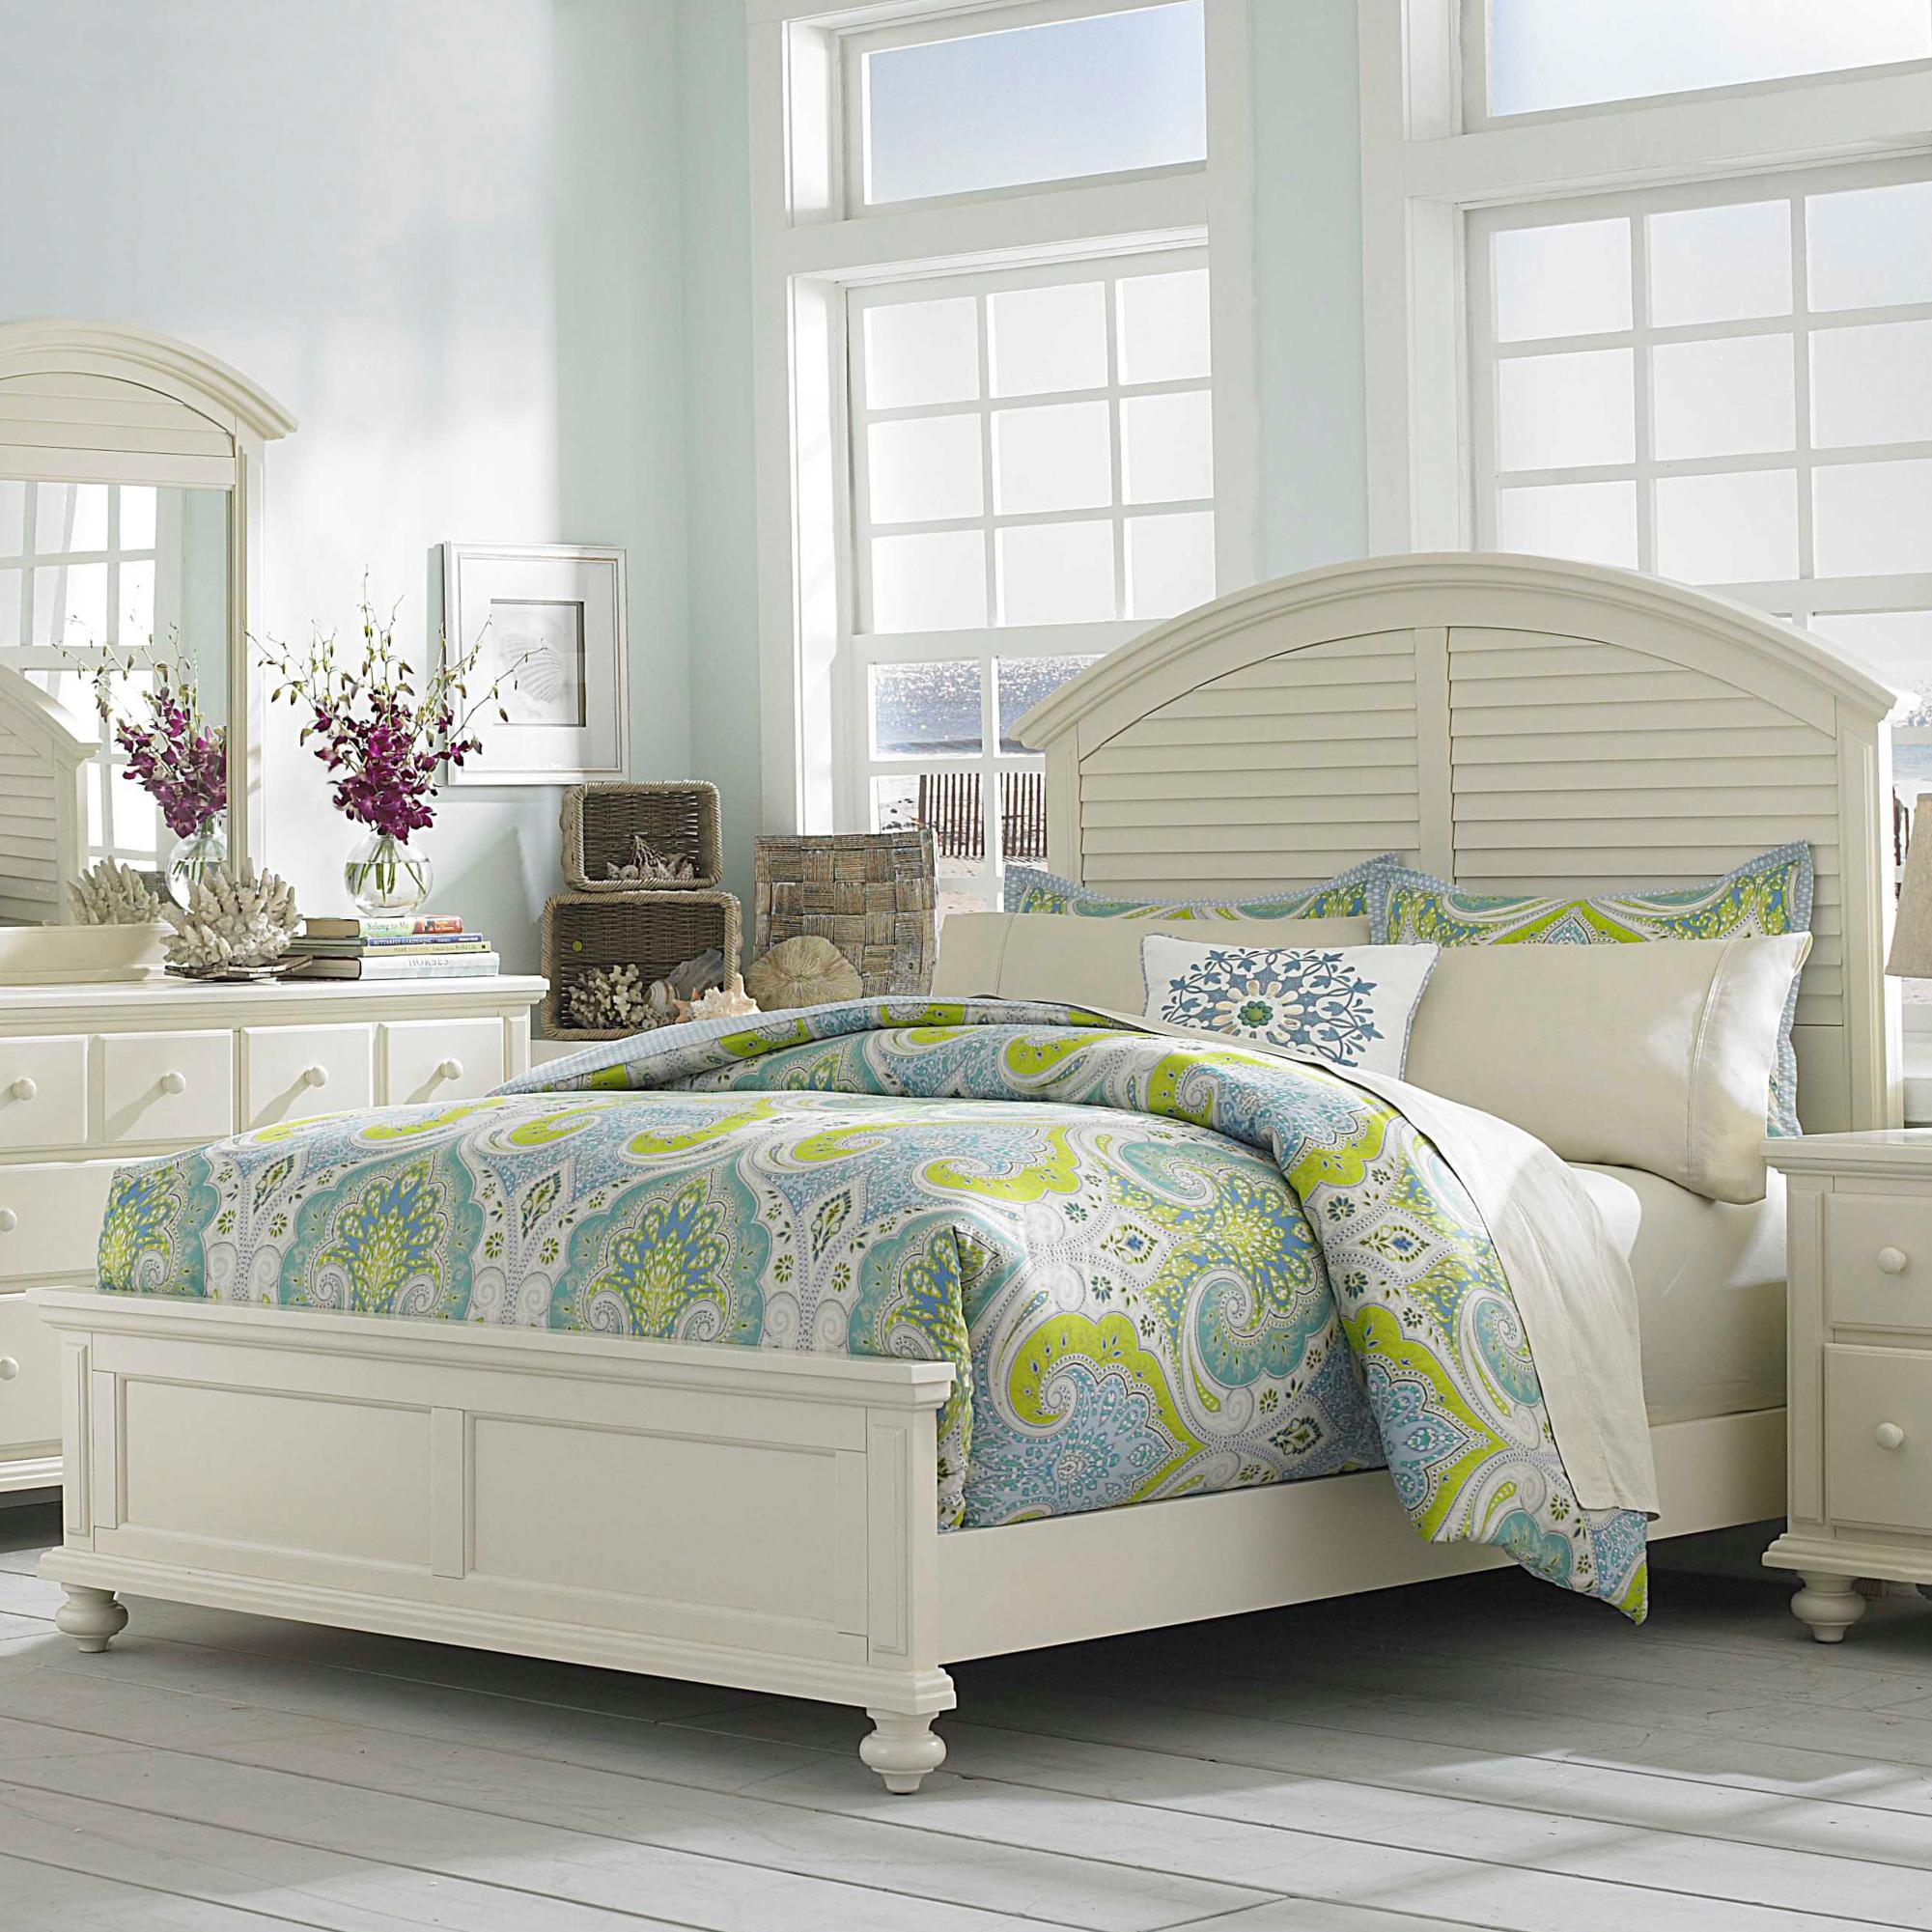 Broyhill furniture seabrooke king panel bed with arched for Panel bed mattress